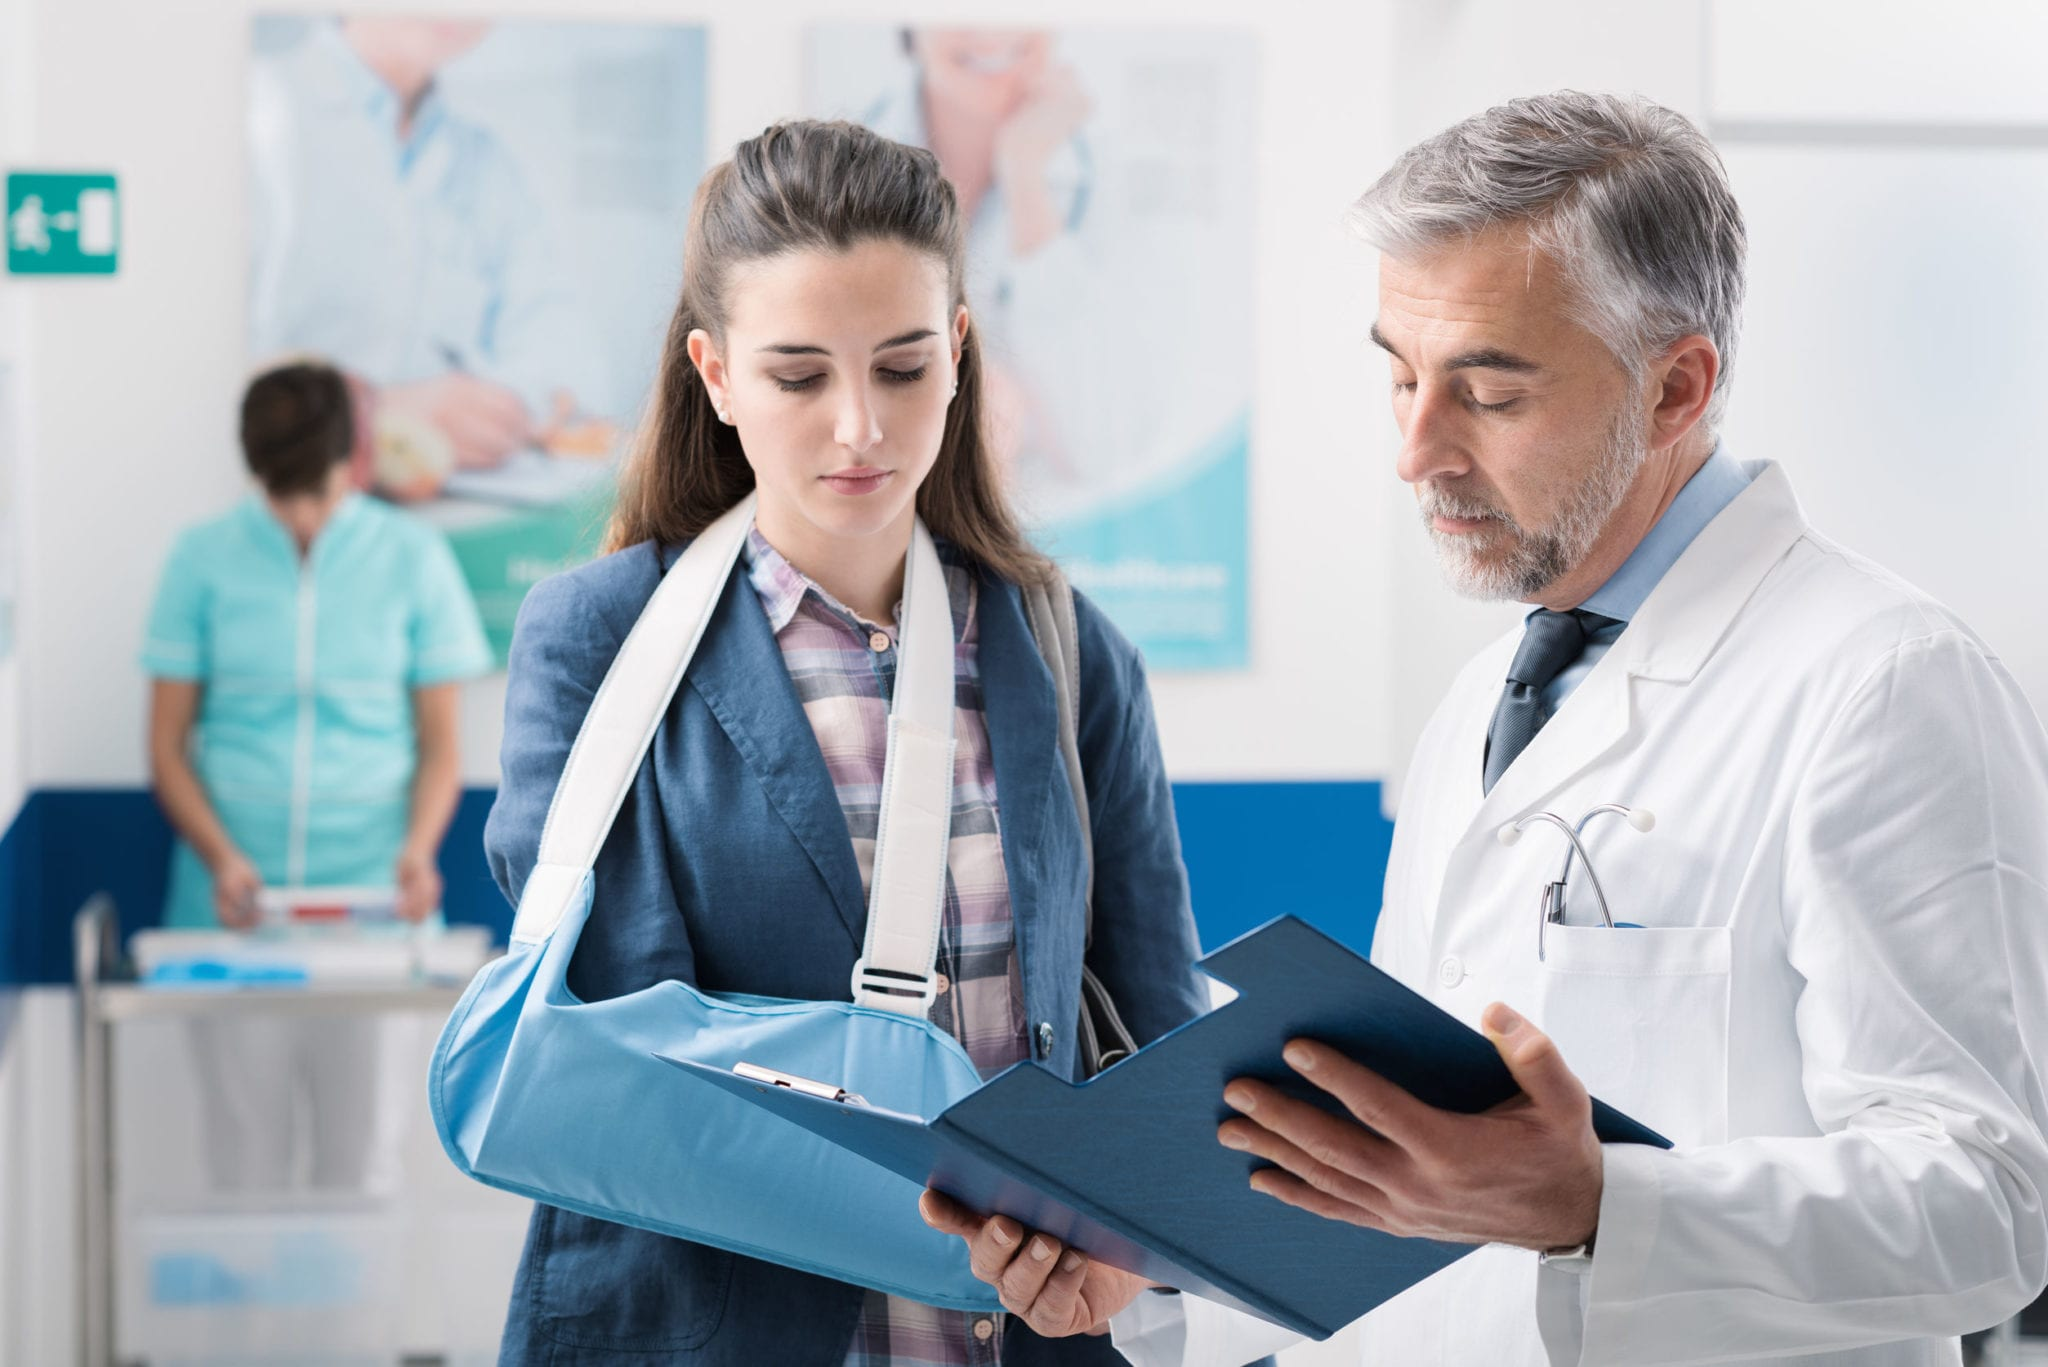 Fort Worth Workers Compensation Injury Lawyer